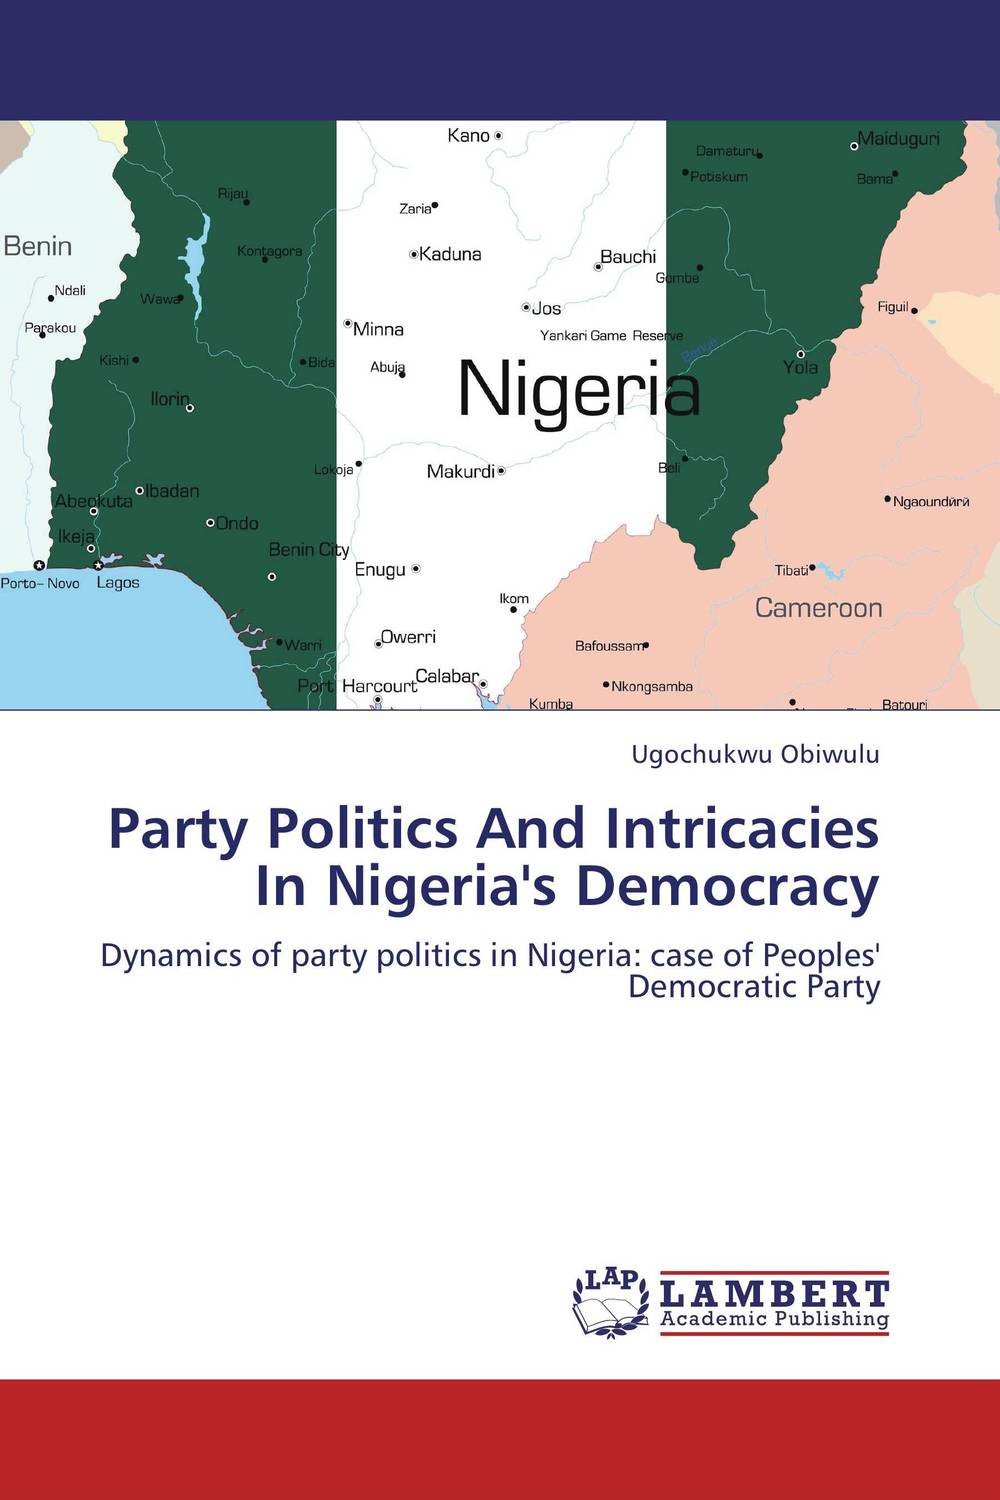 Party Politics And Intricacies In Nigeria's Democracy democracy and dictatorship in uganda a politics of dispensation